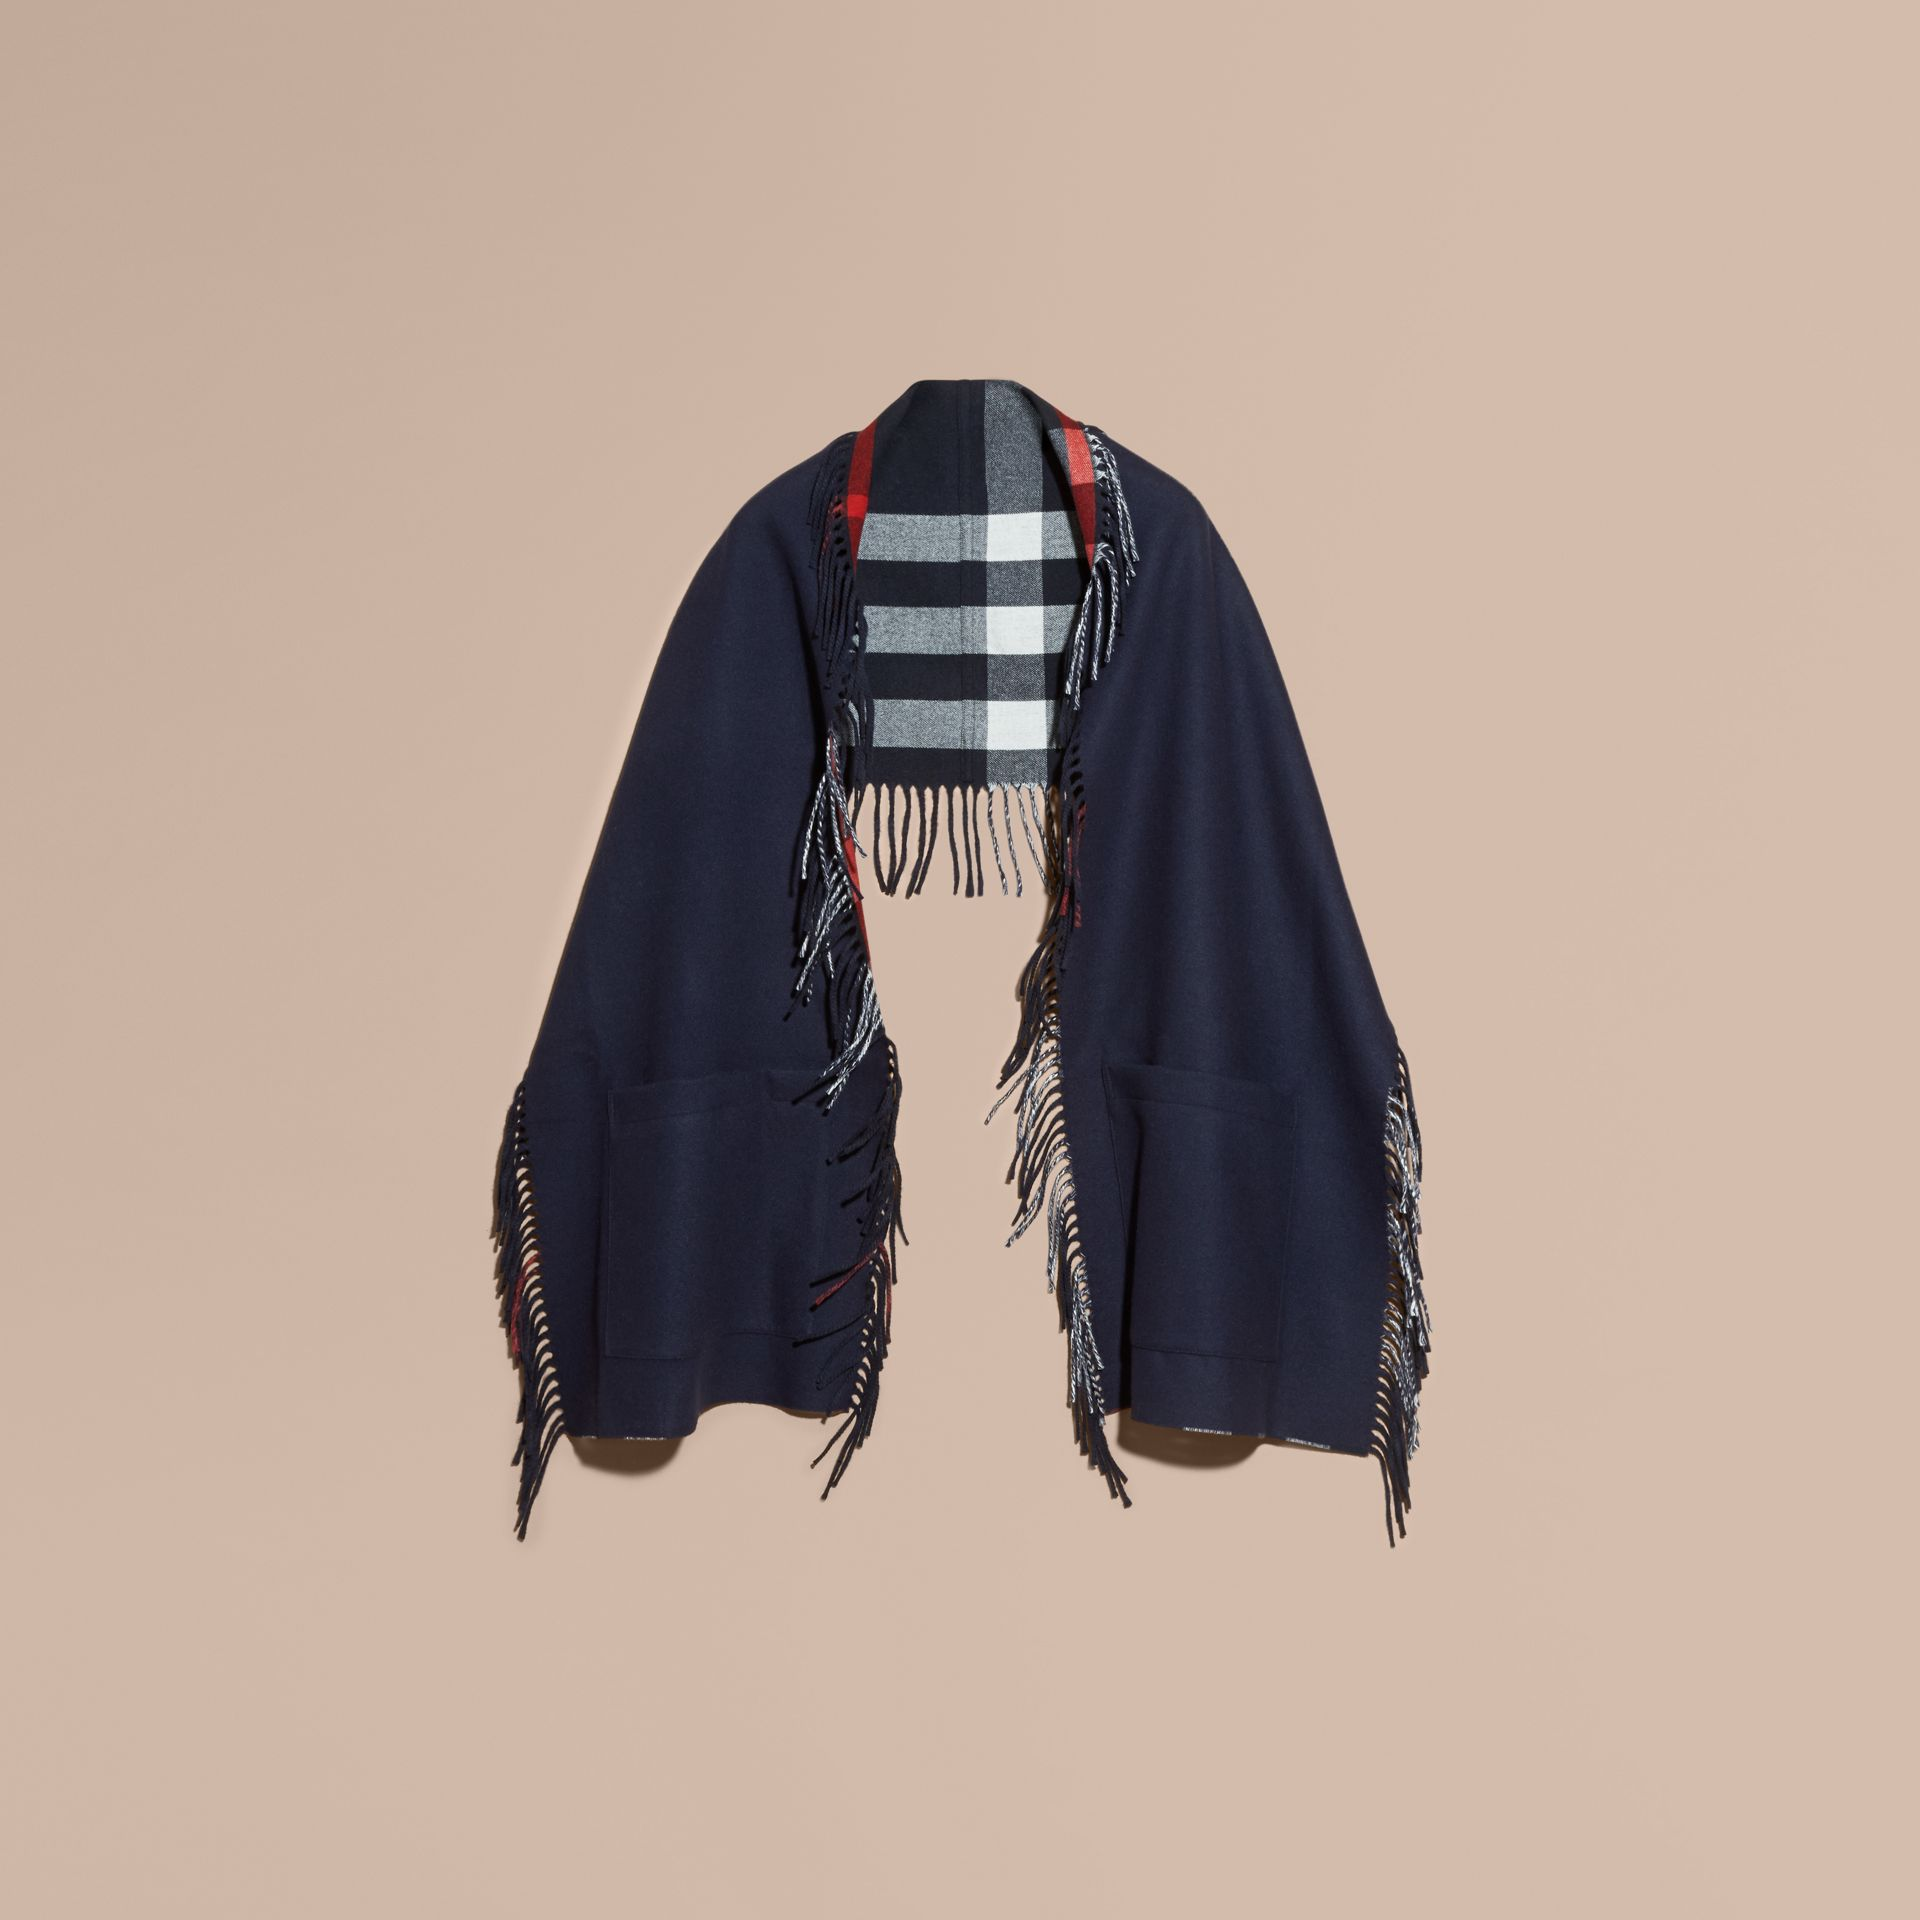 Fringed Cashmere Merino Wool Stole in Navy/indigo Blue - gallery image 4